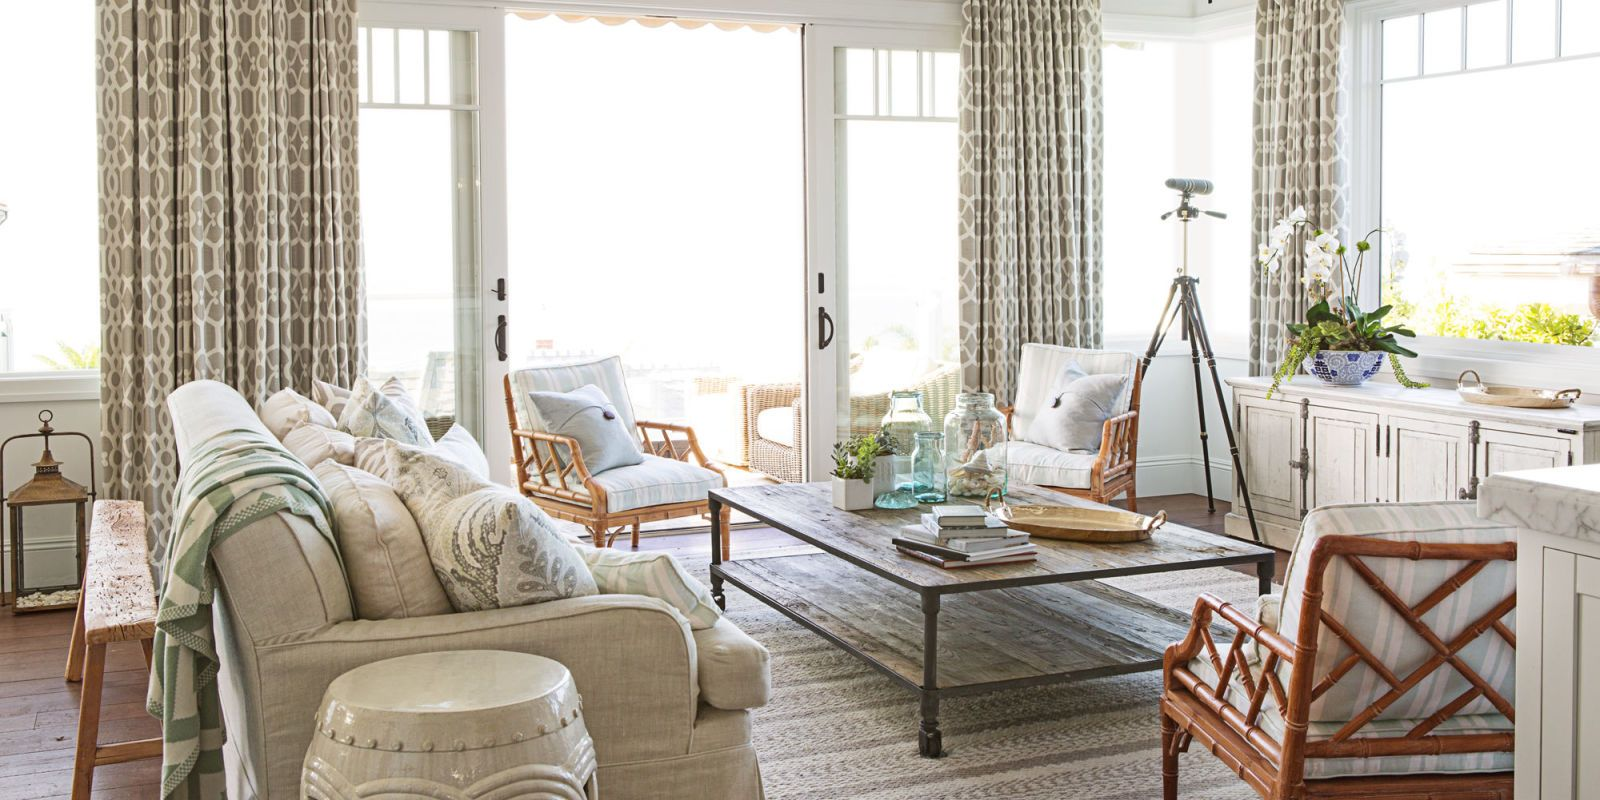 15 Family Room Decorating Ideas